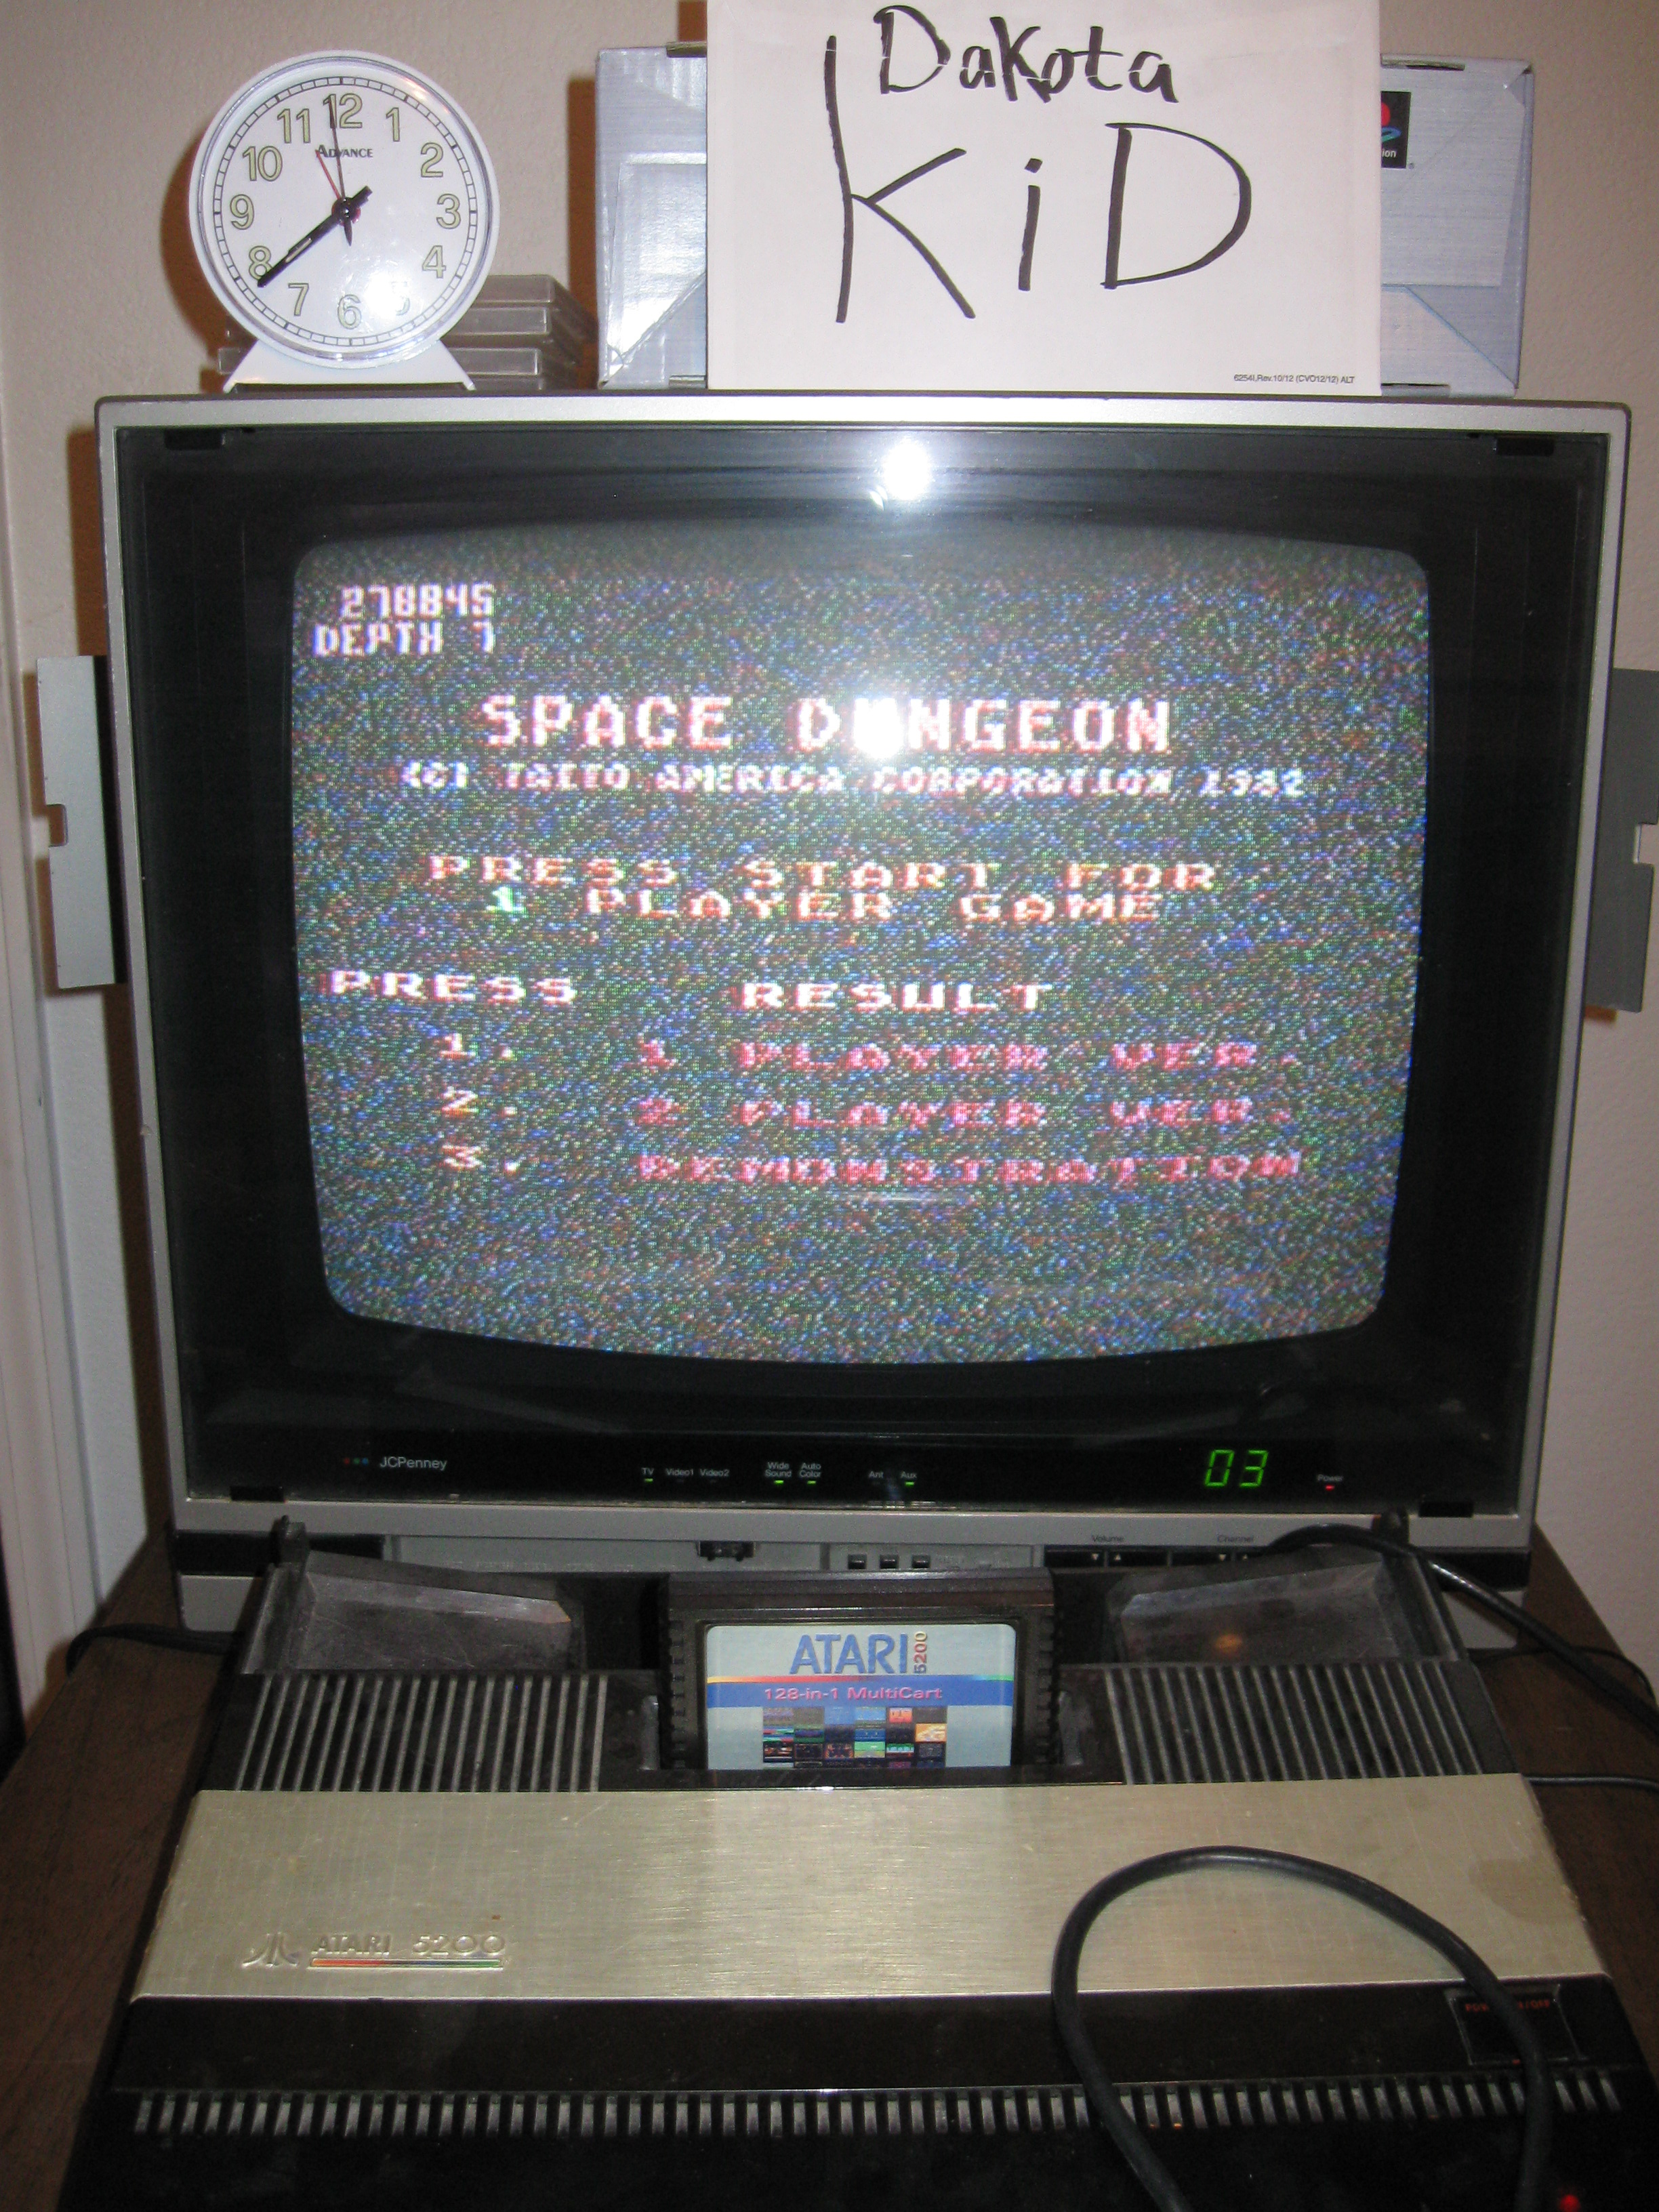 DakotaKid: Space Dungeon (Atari 5200) 278,845 points on 2016-04-18 13:32:26